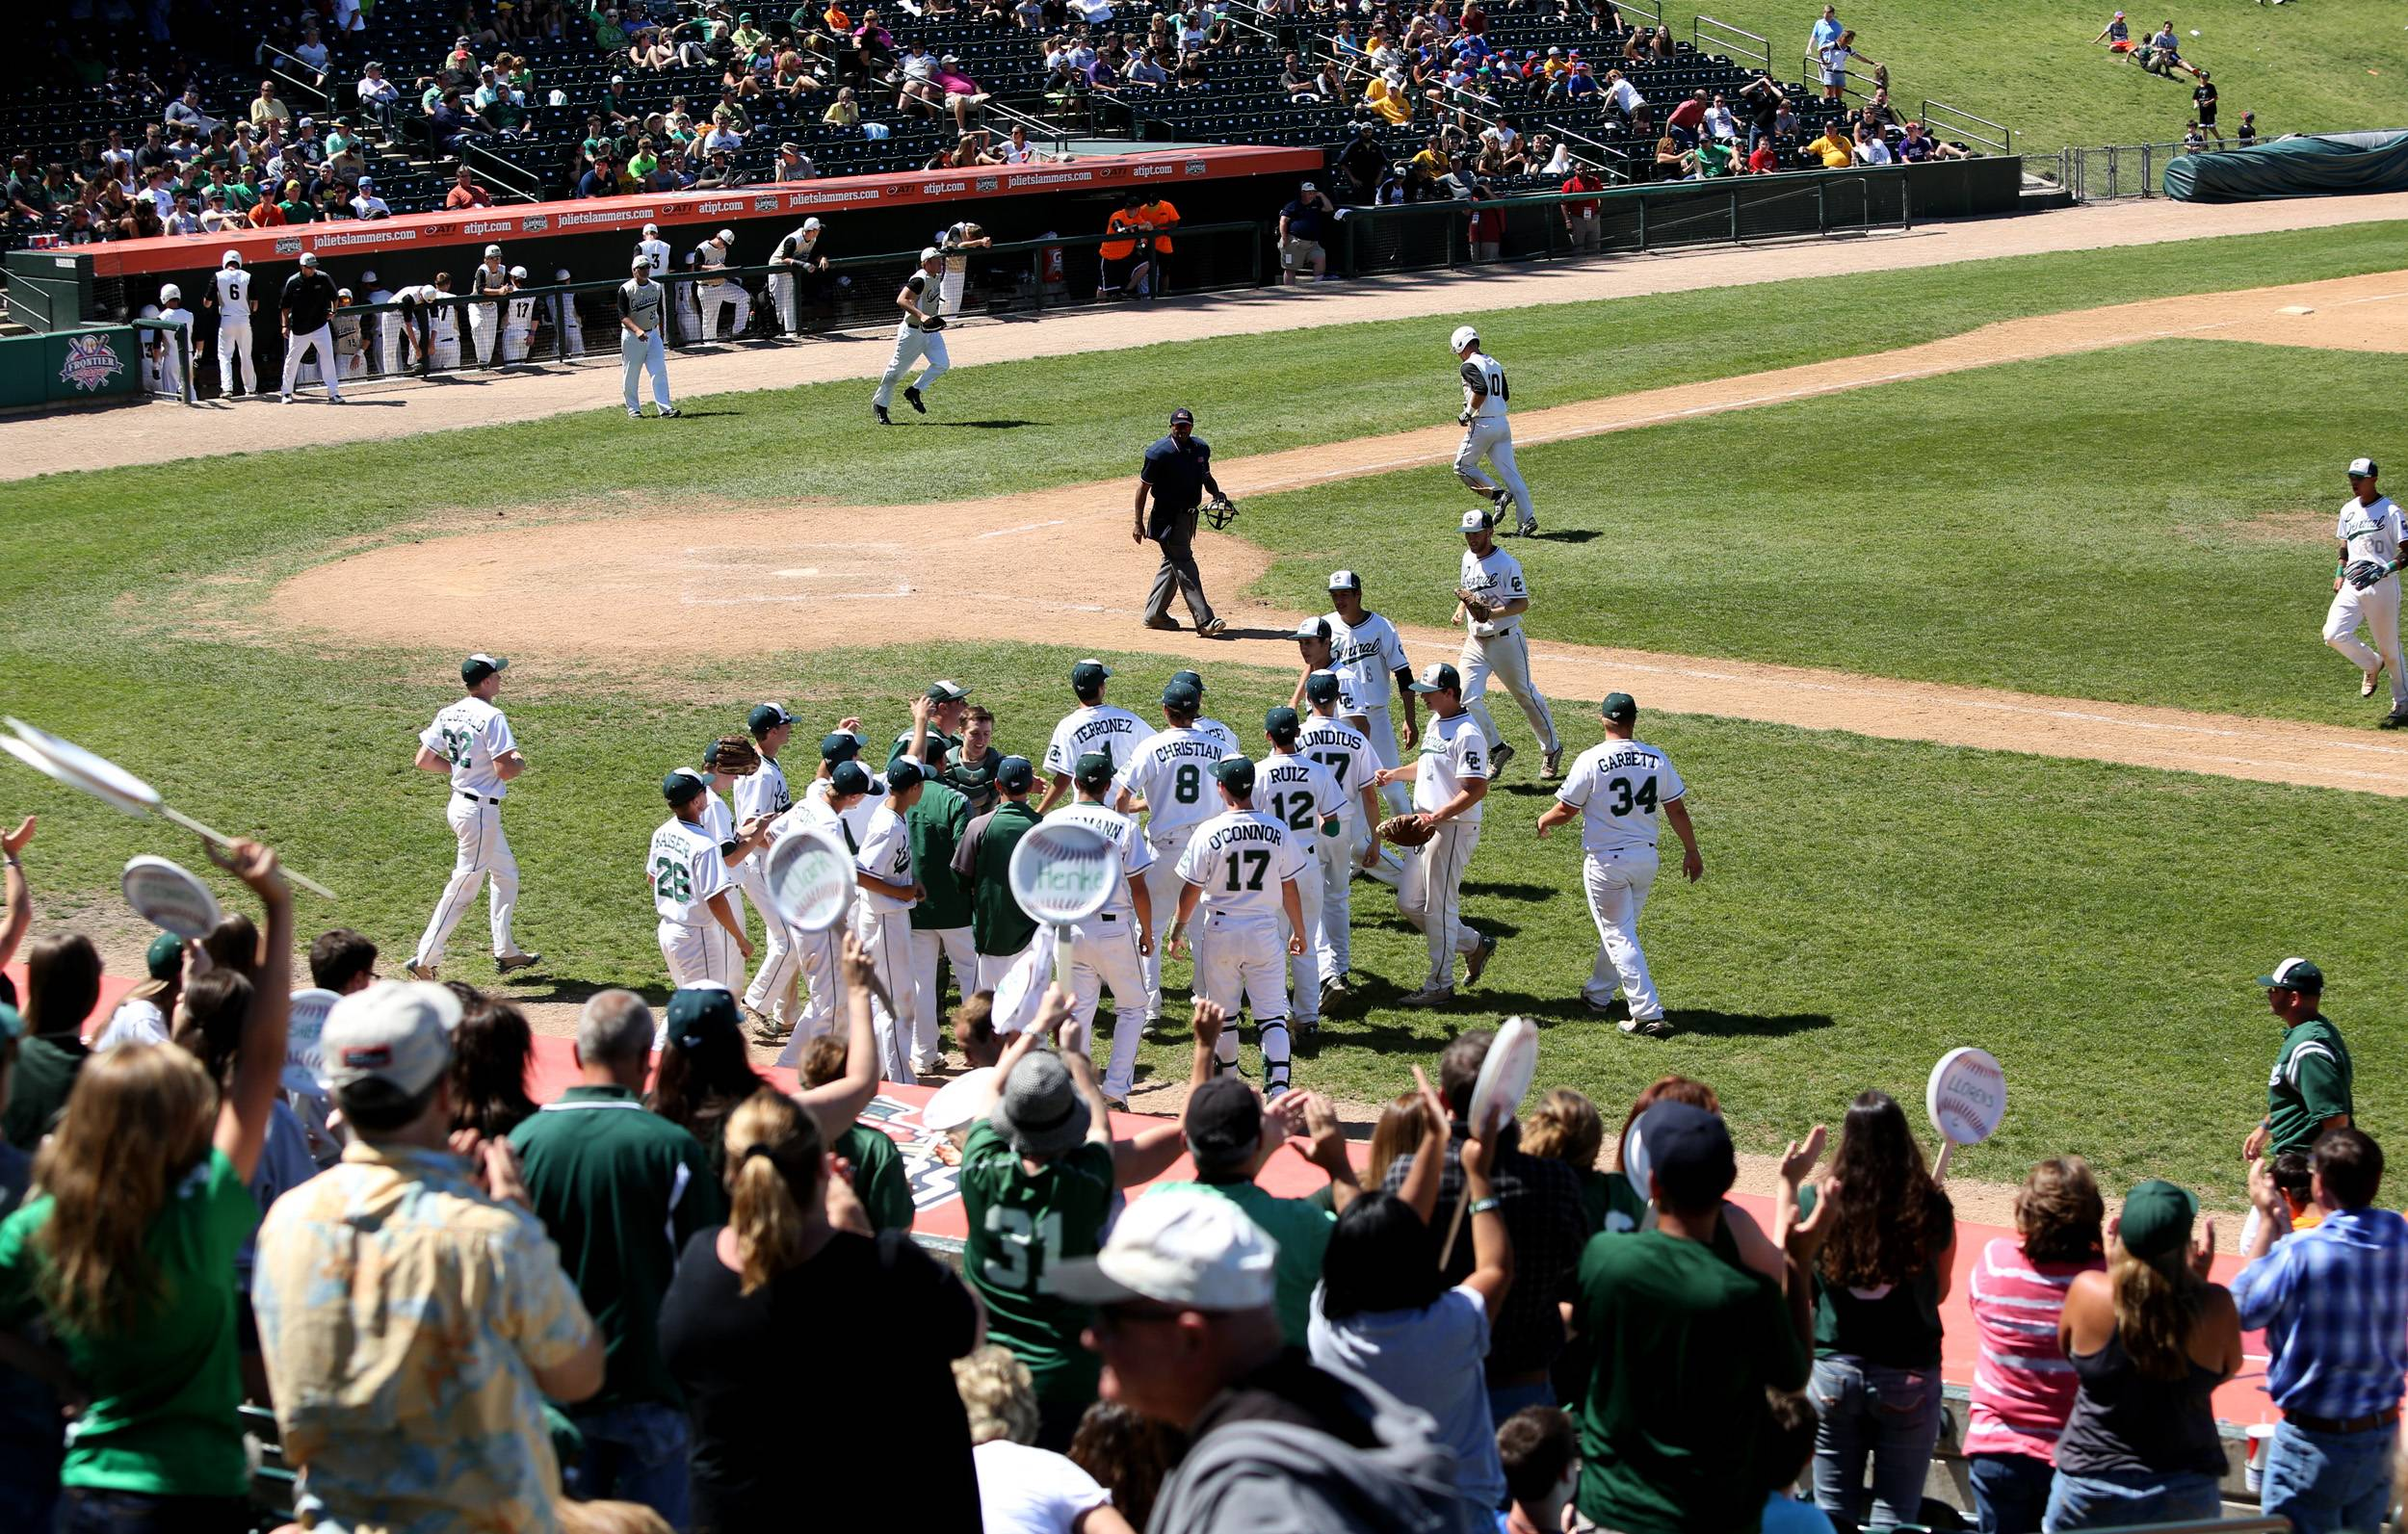 Grayslake Central celebrates pushing the game into extra innings against Springfield Sacred Heart-Griffin during the Class 3A baseball state semifinals at Silver Cross Field in Joliet.